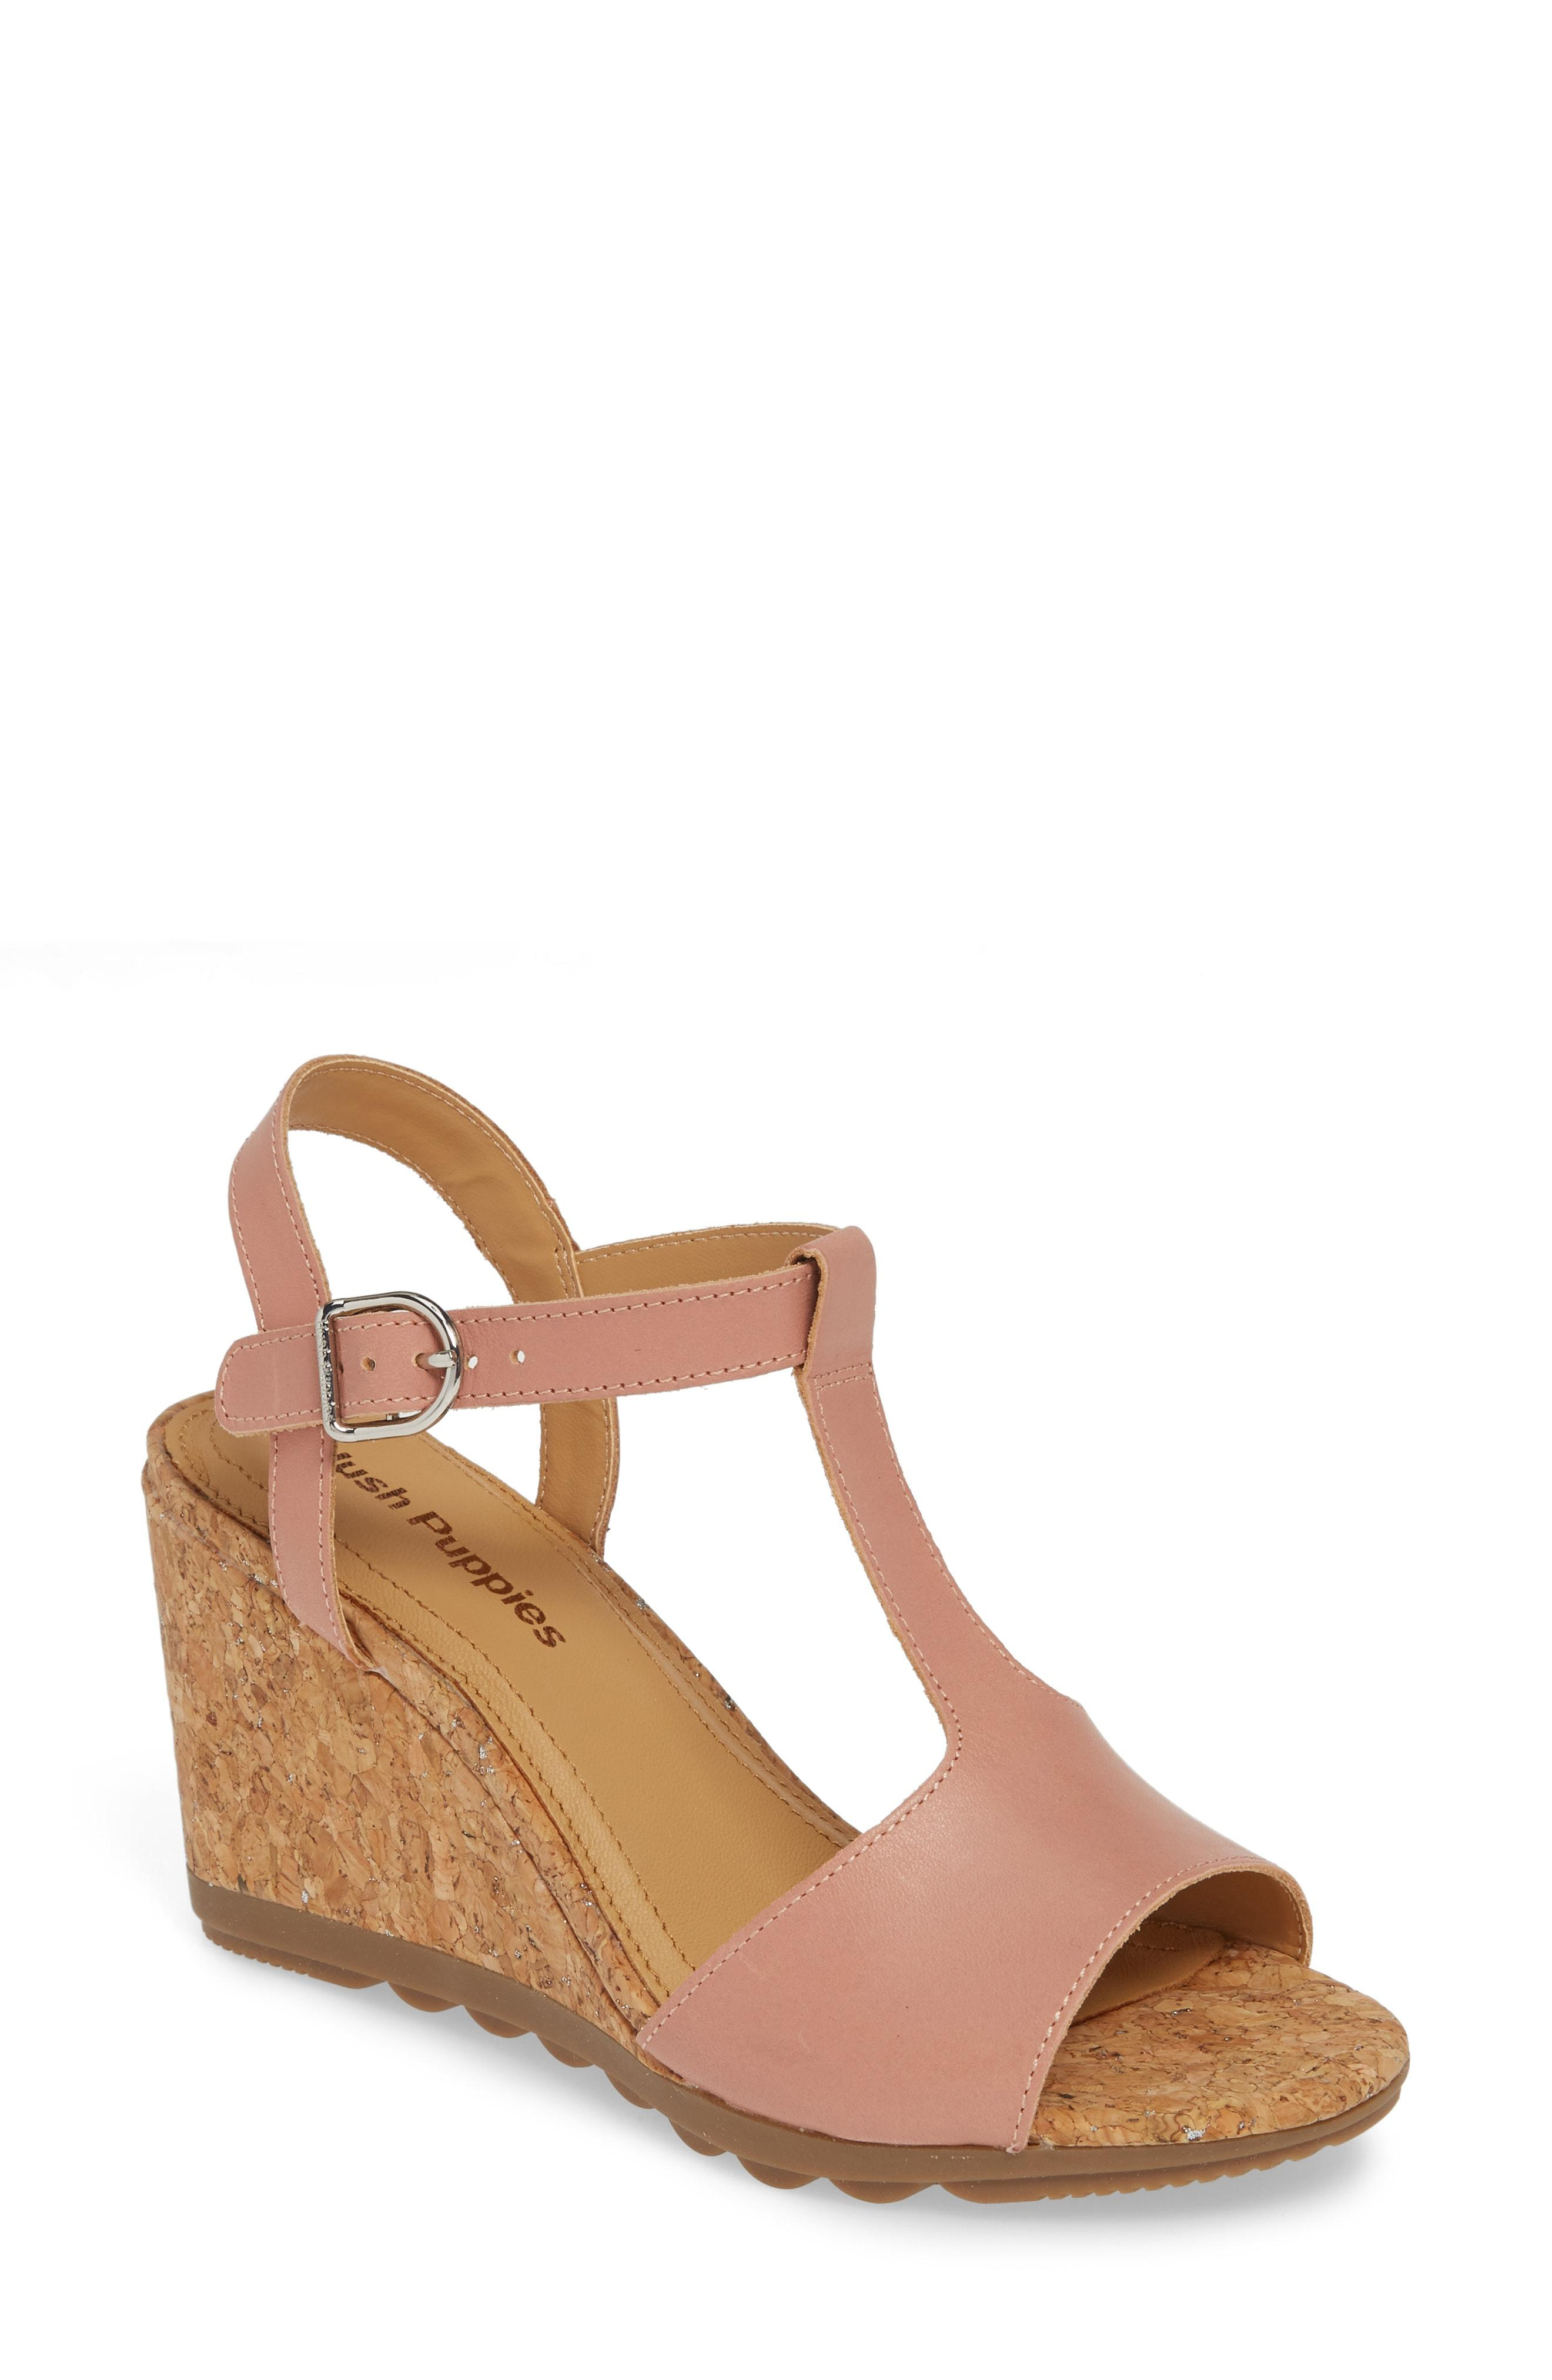 4a2f51229f76d Lyst - Hush Puppies Hush Puppies Pekingese Wedge Sandal in Brown